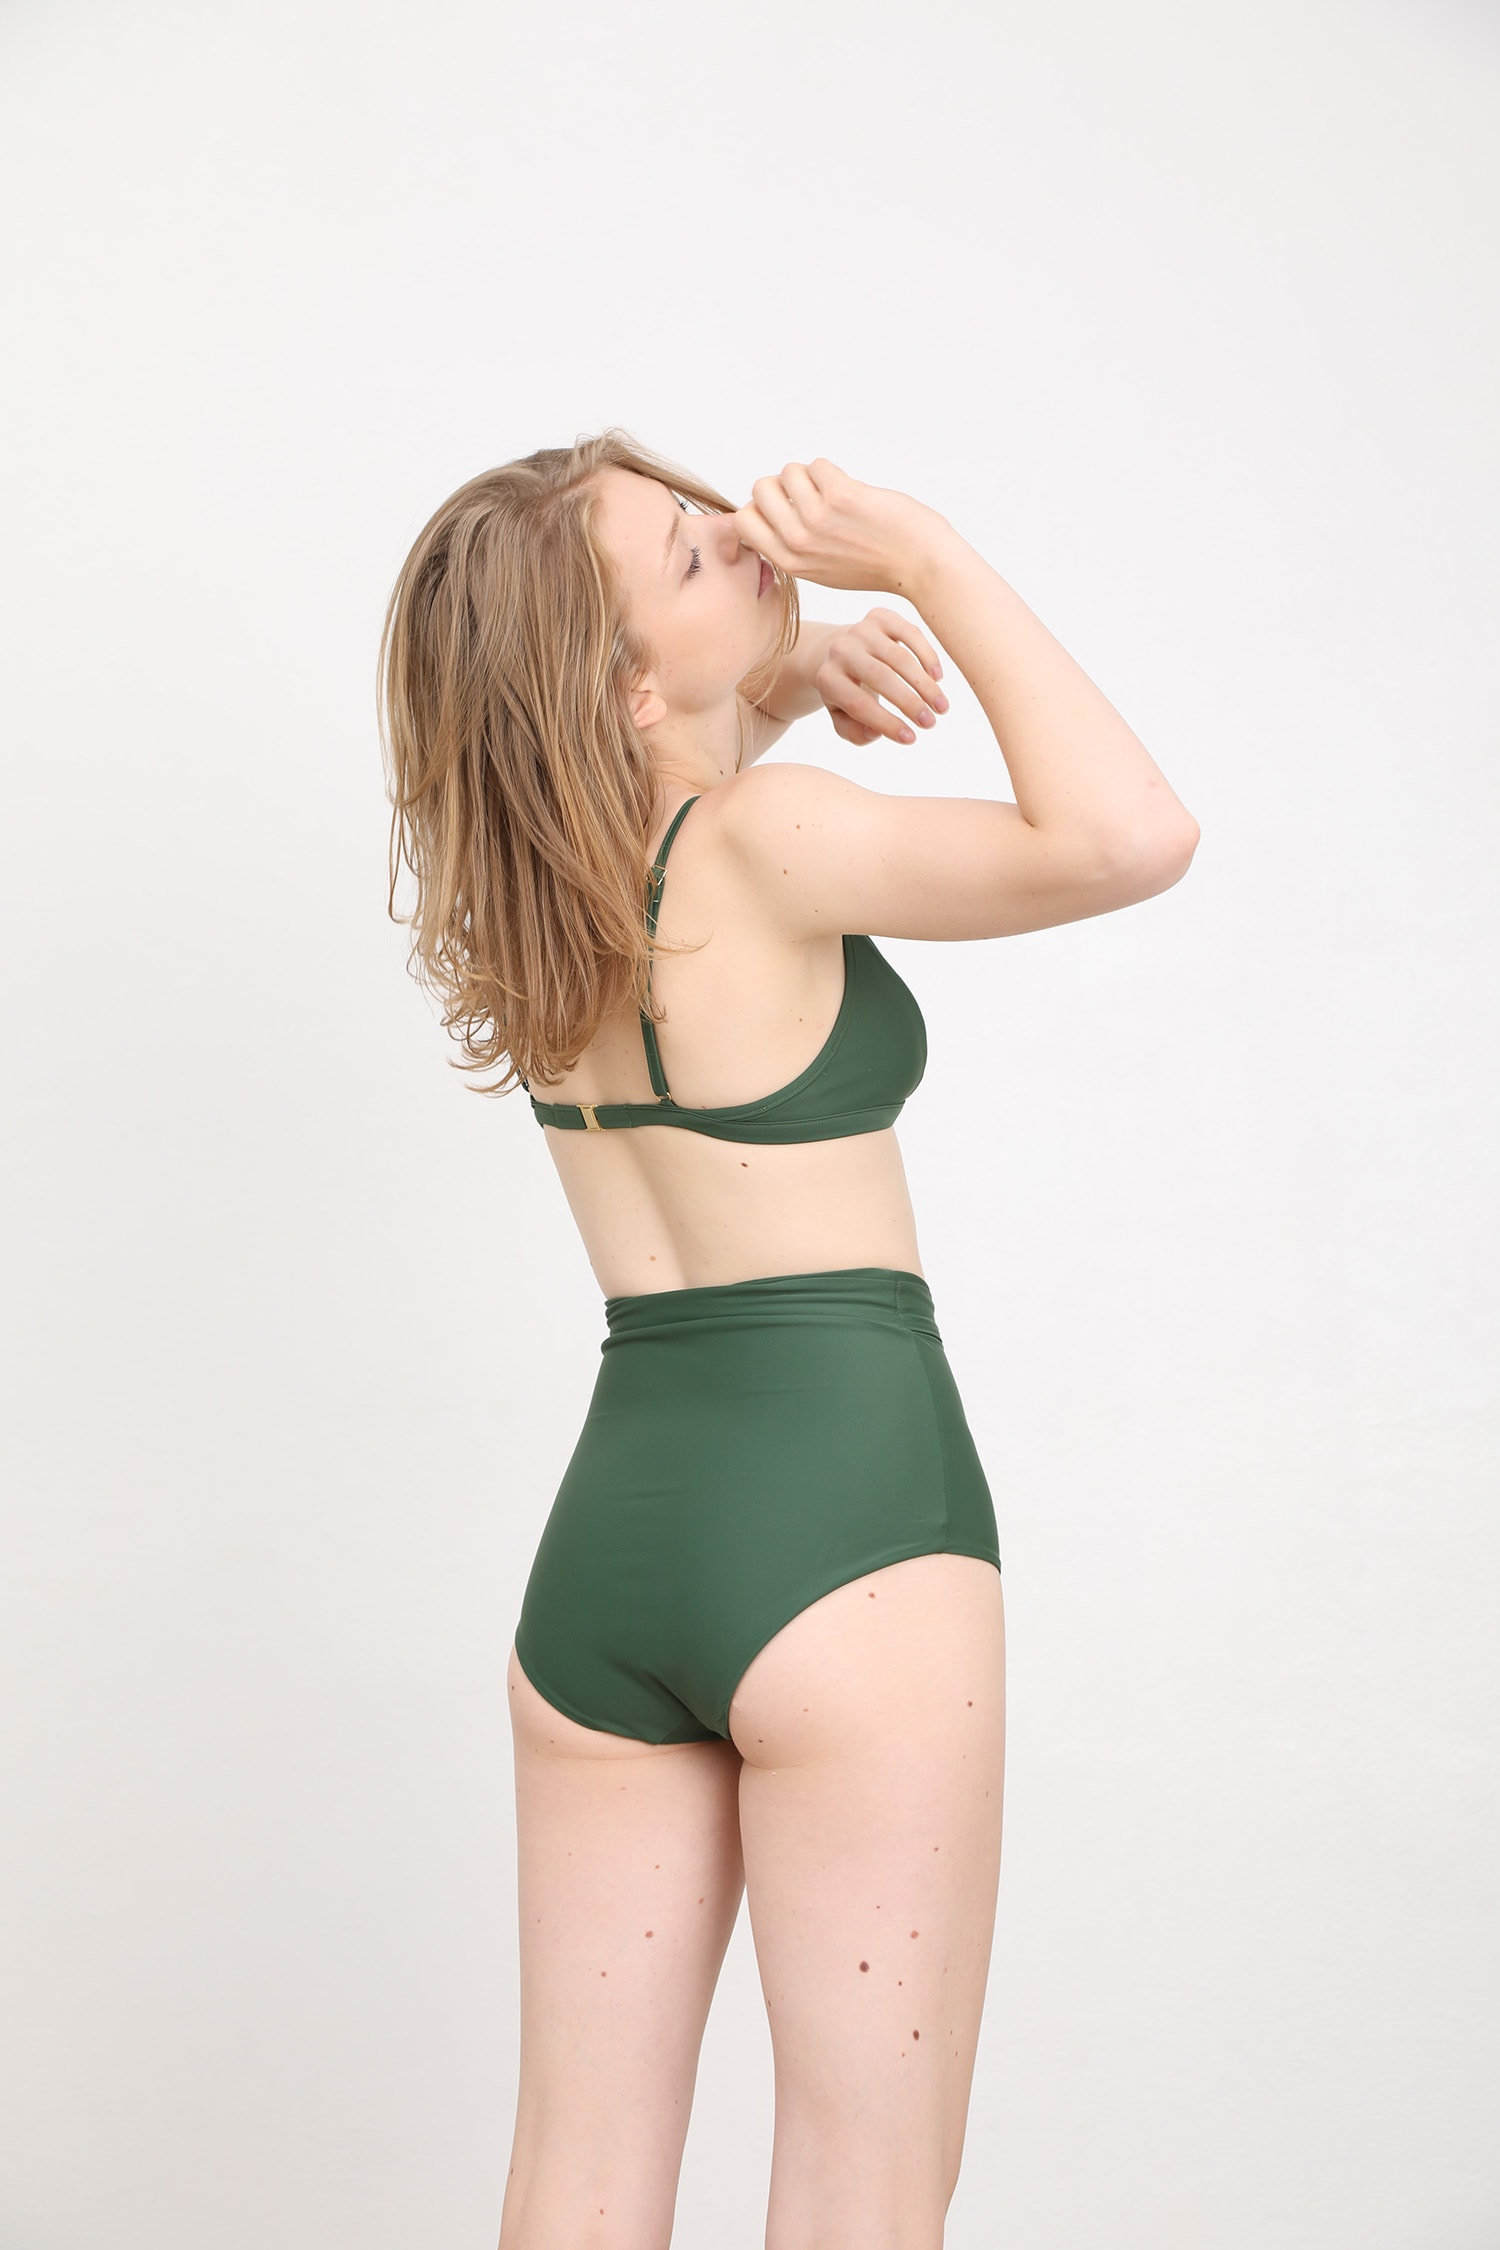 margaret and hermione_ss19_top no4_94,00eur_bottom no.4_92,00eur_dark green_hinten_online